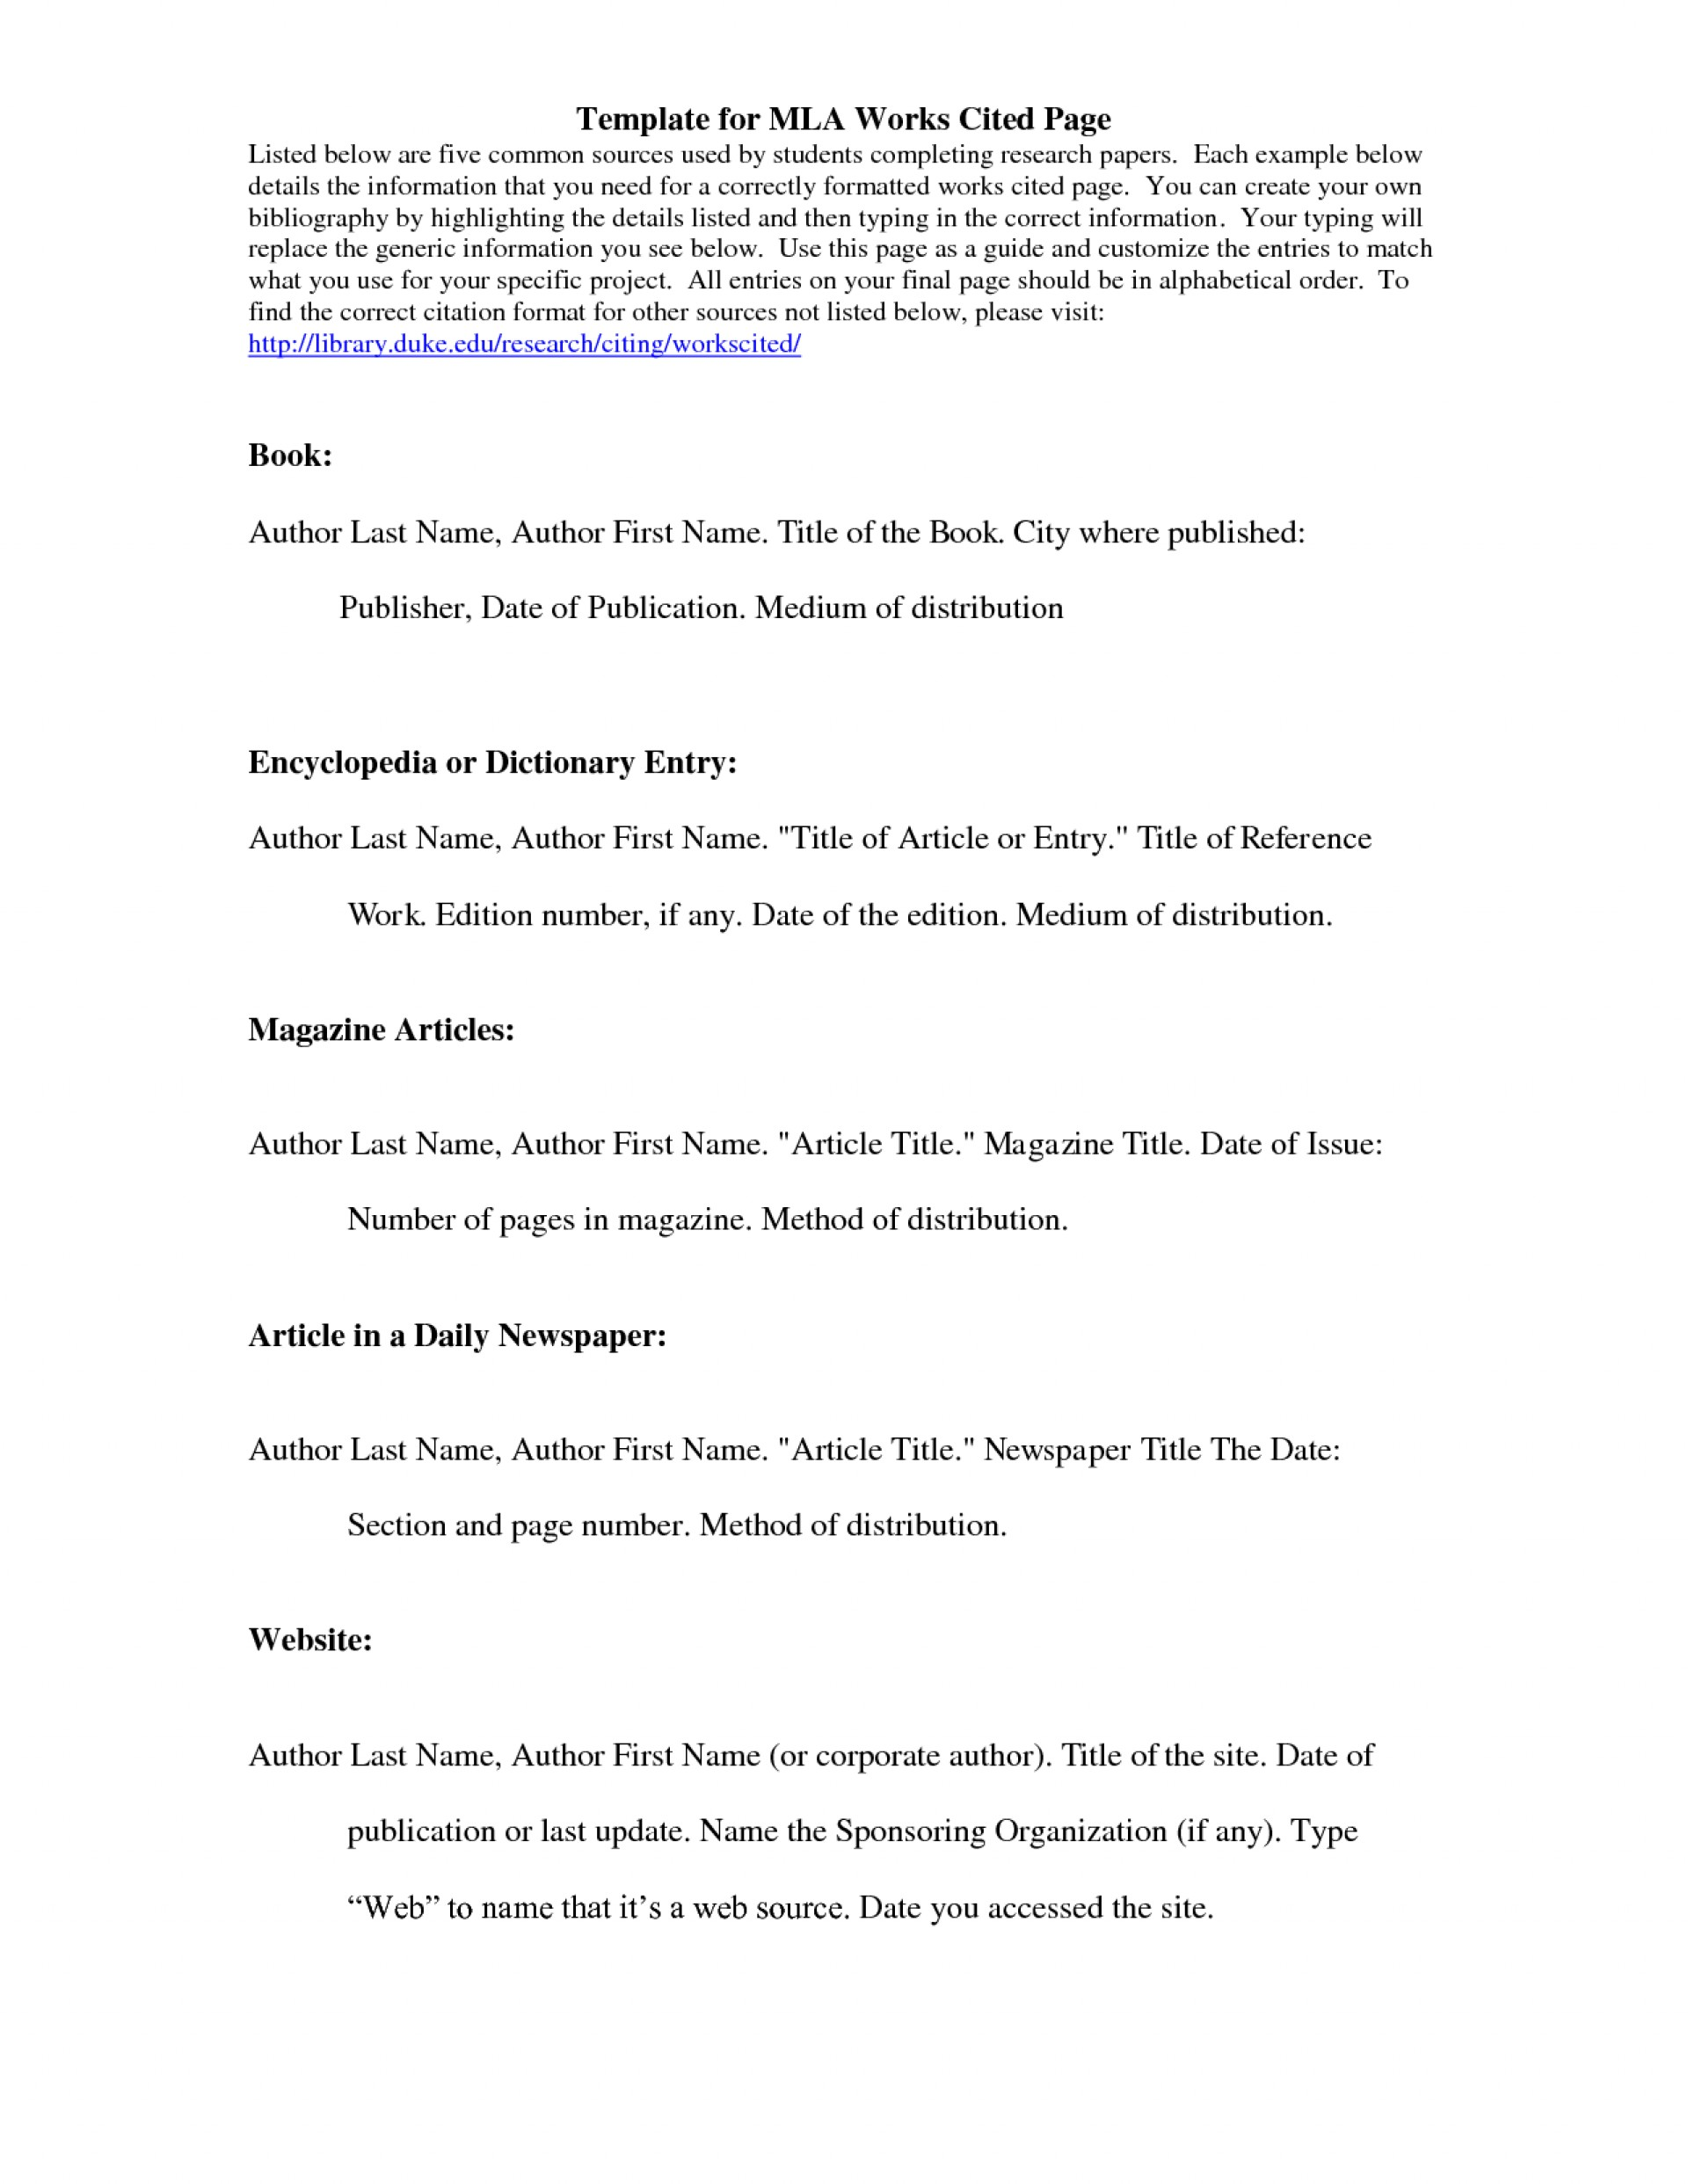 021 Brilliant Ideas Of Writing Research Papers Using Mla Documentation Cute Essay Reference Page Paper How Do You Write In Imposing A Format To Step By Examples 1920